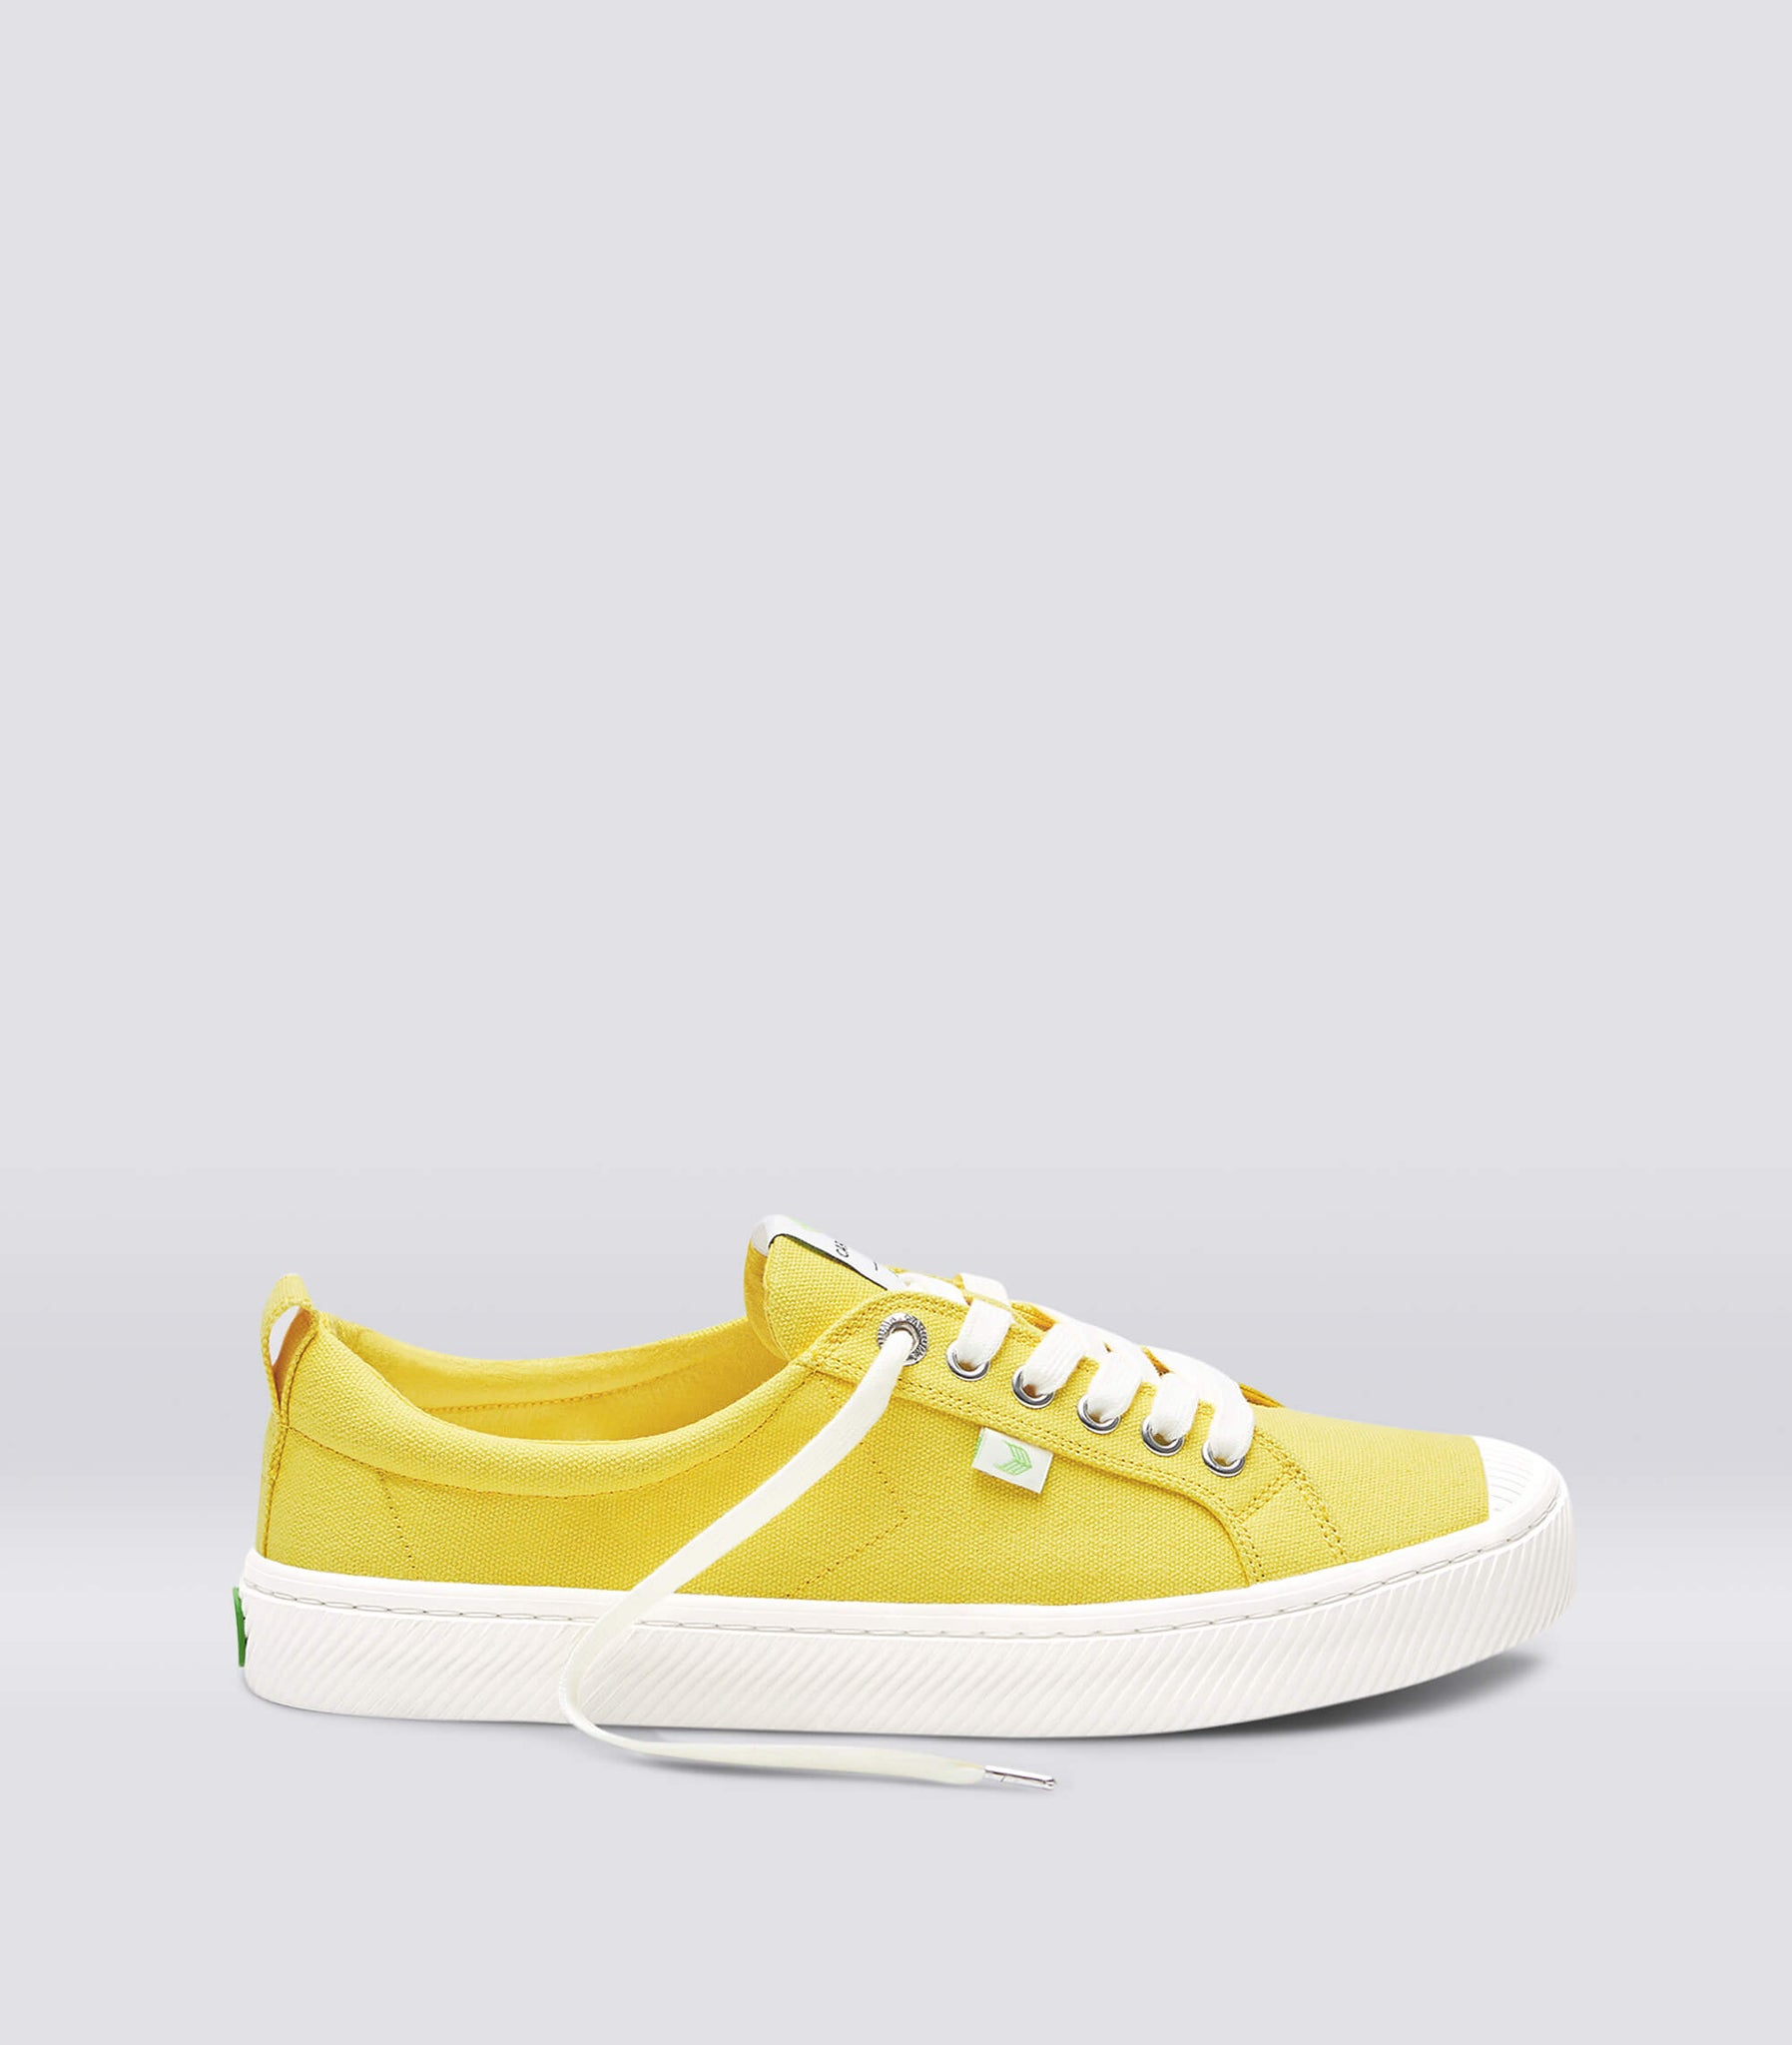 OCA Low Yellow Canvas Sneaker Men